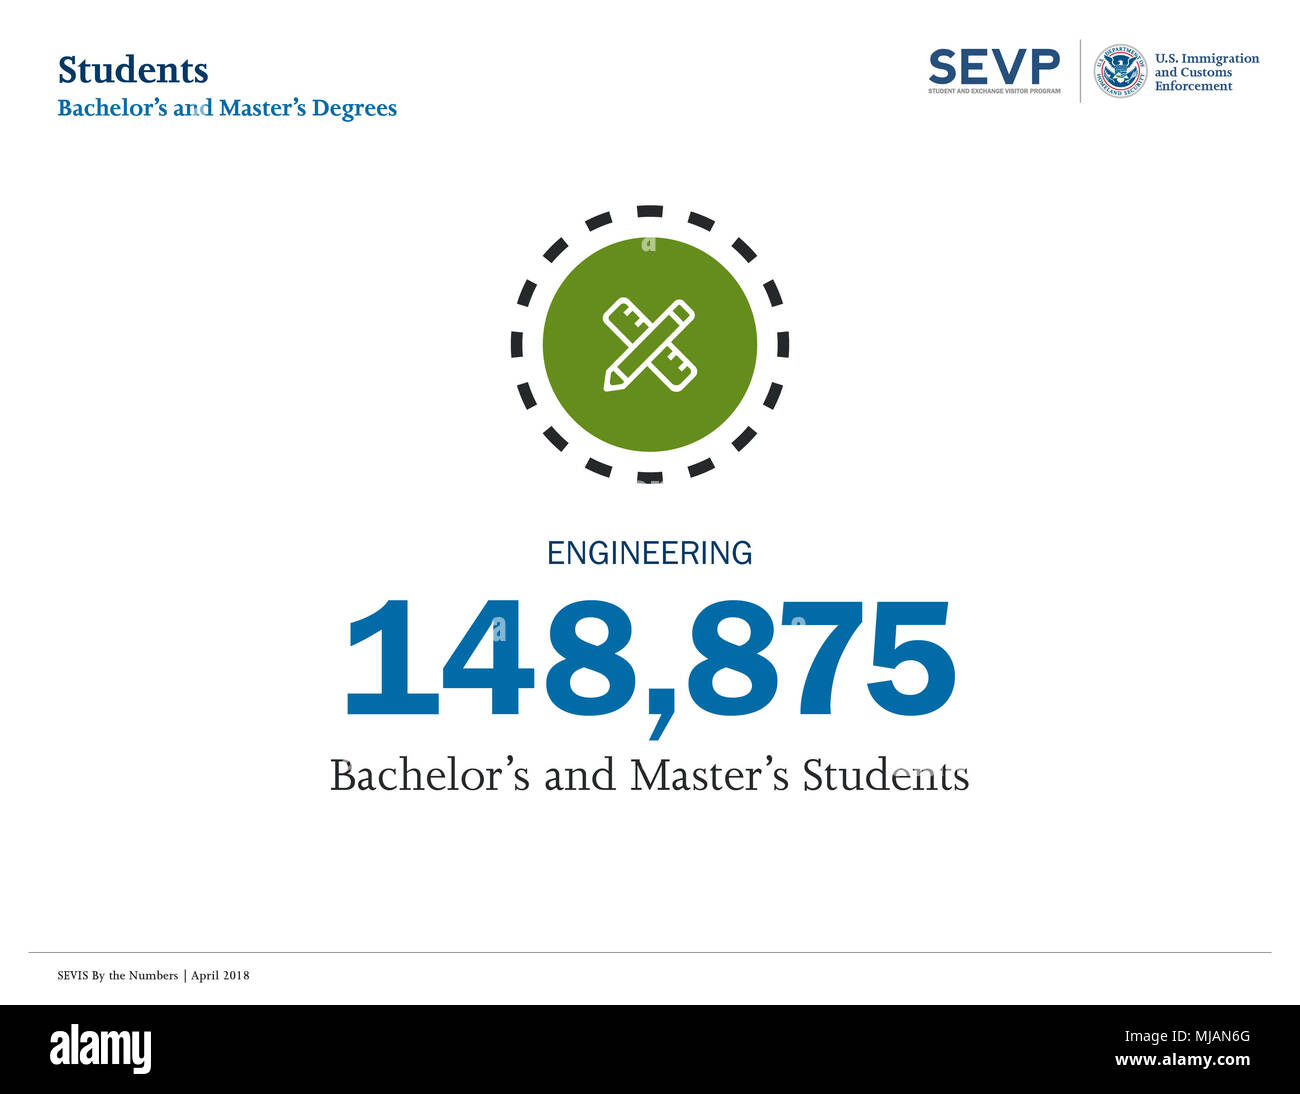 """Slightly more than 1.2 million international students with F (academic) or M (vocational) status study in the United States according to the latest """"SEVIS by the Numbers,"""" a report on international student trends prepared by the Student and Exchange Visitor Program (SEVP), part of U.S. Immigration and Customs Enforcement's (ICE) Homeland Security Investigations (HSI). Stock Photo"""